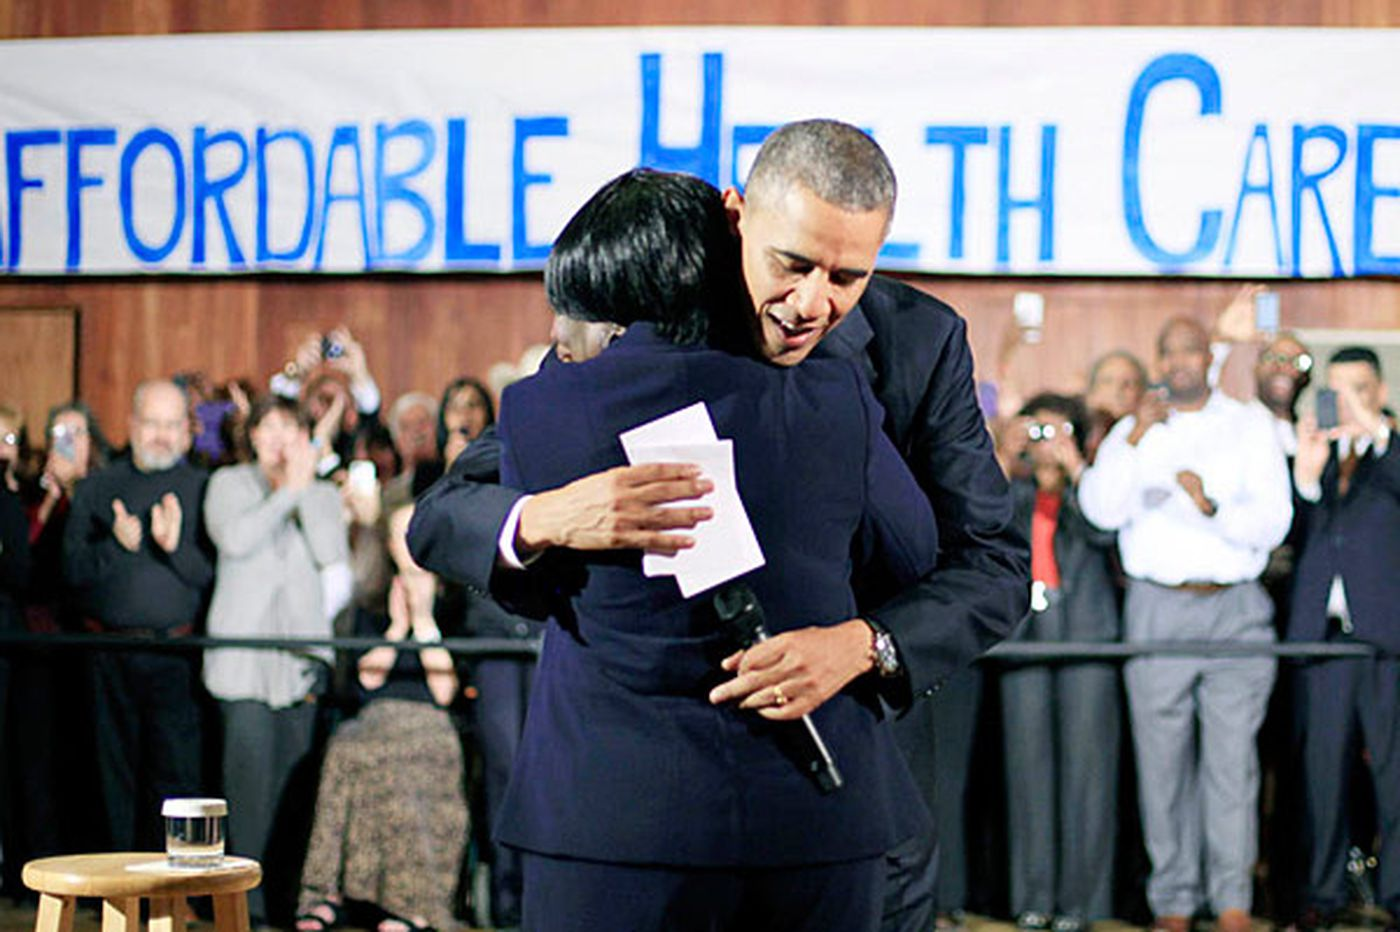 Obamacare: A Daily News Q&A to help you sort it out